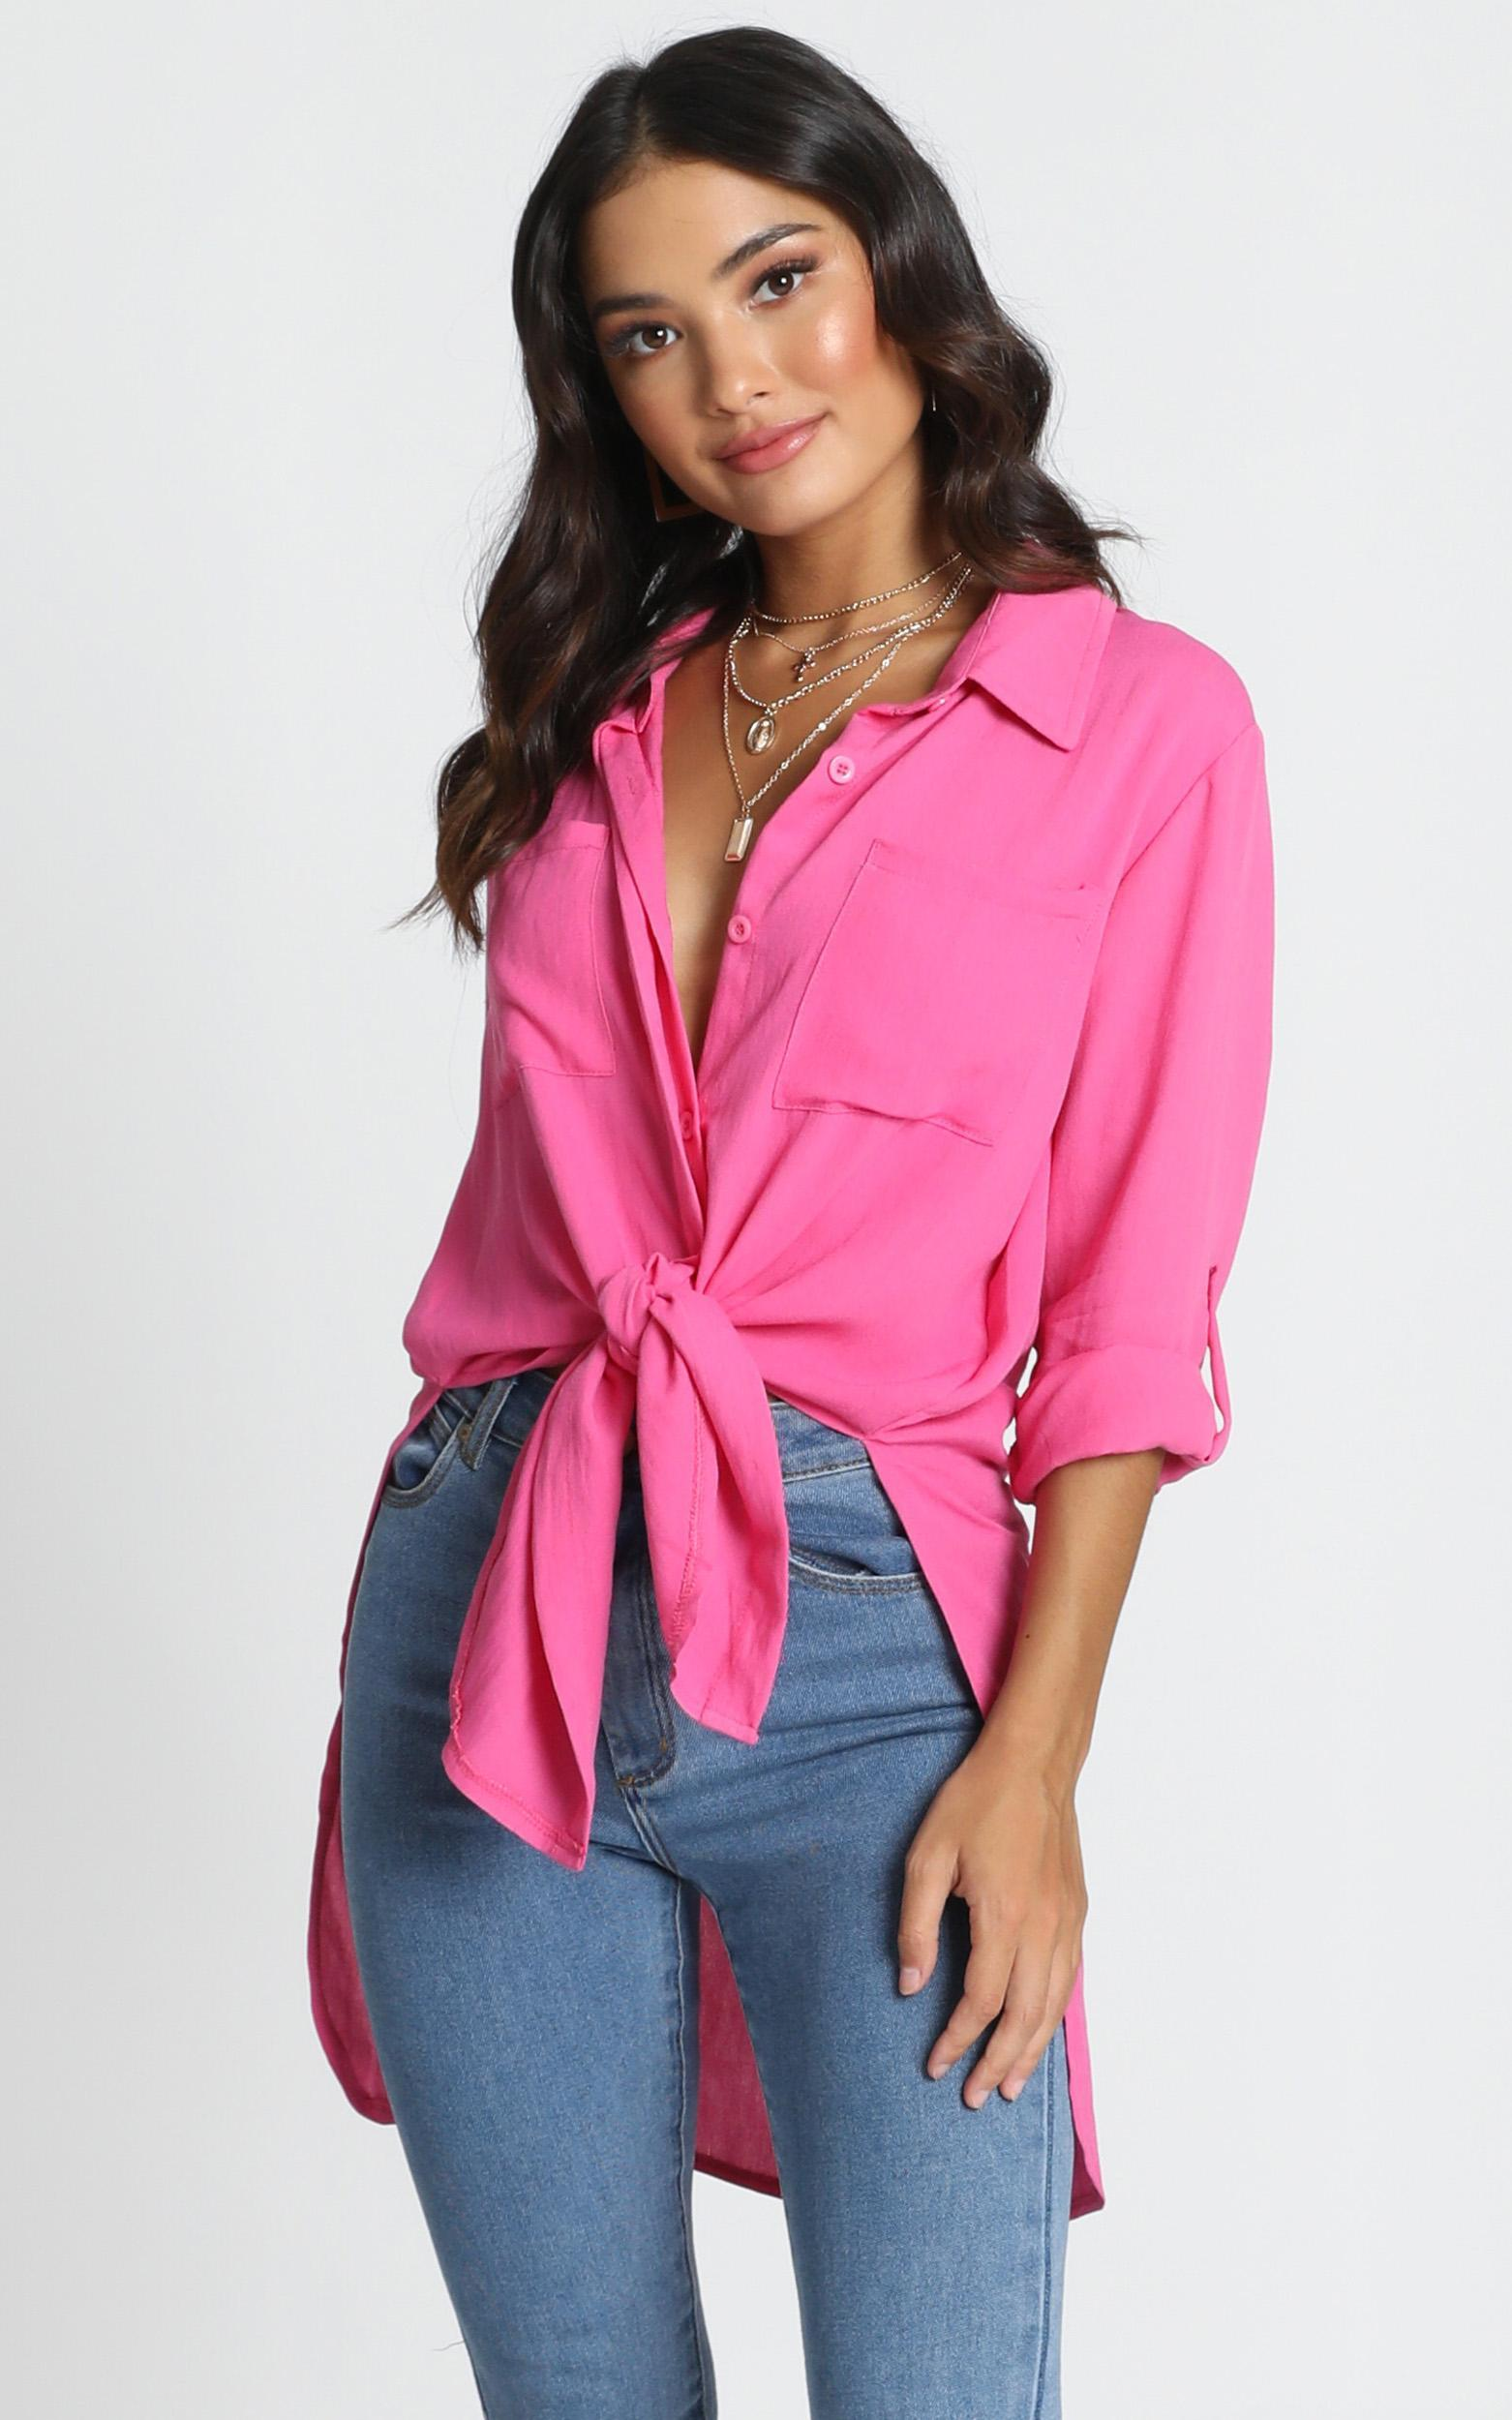 Trish Button Up Shirt in hot pink - 14 (XL), Pink, hi-res image number null